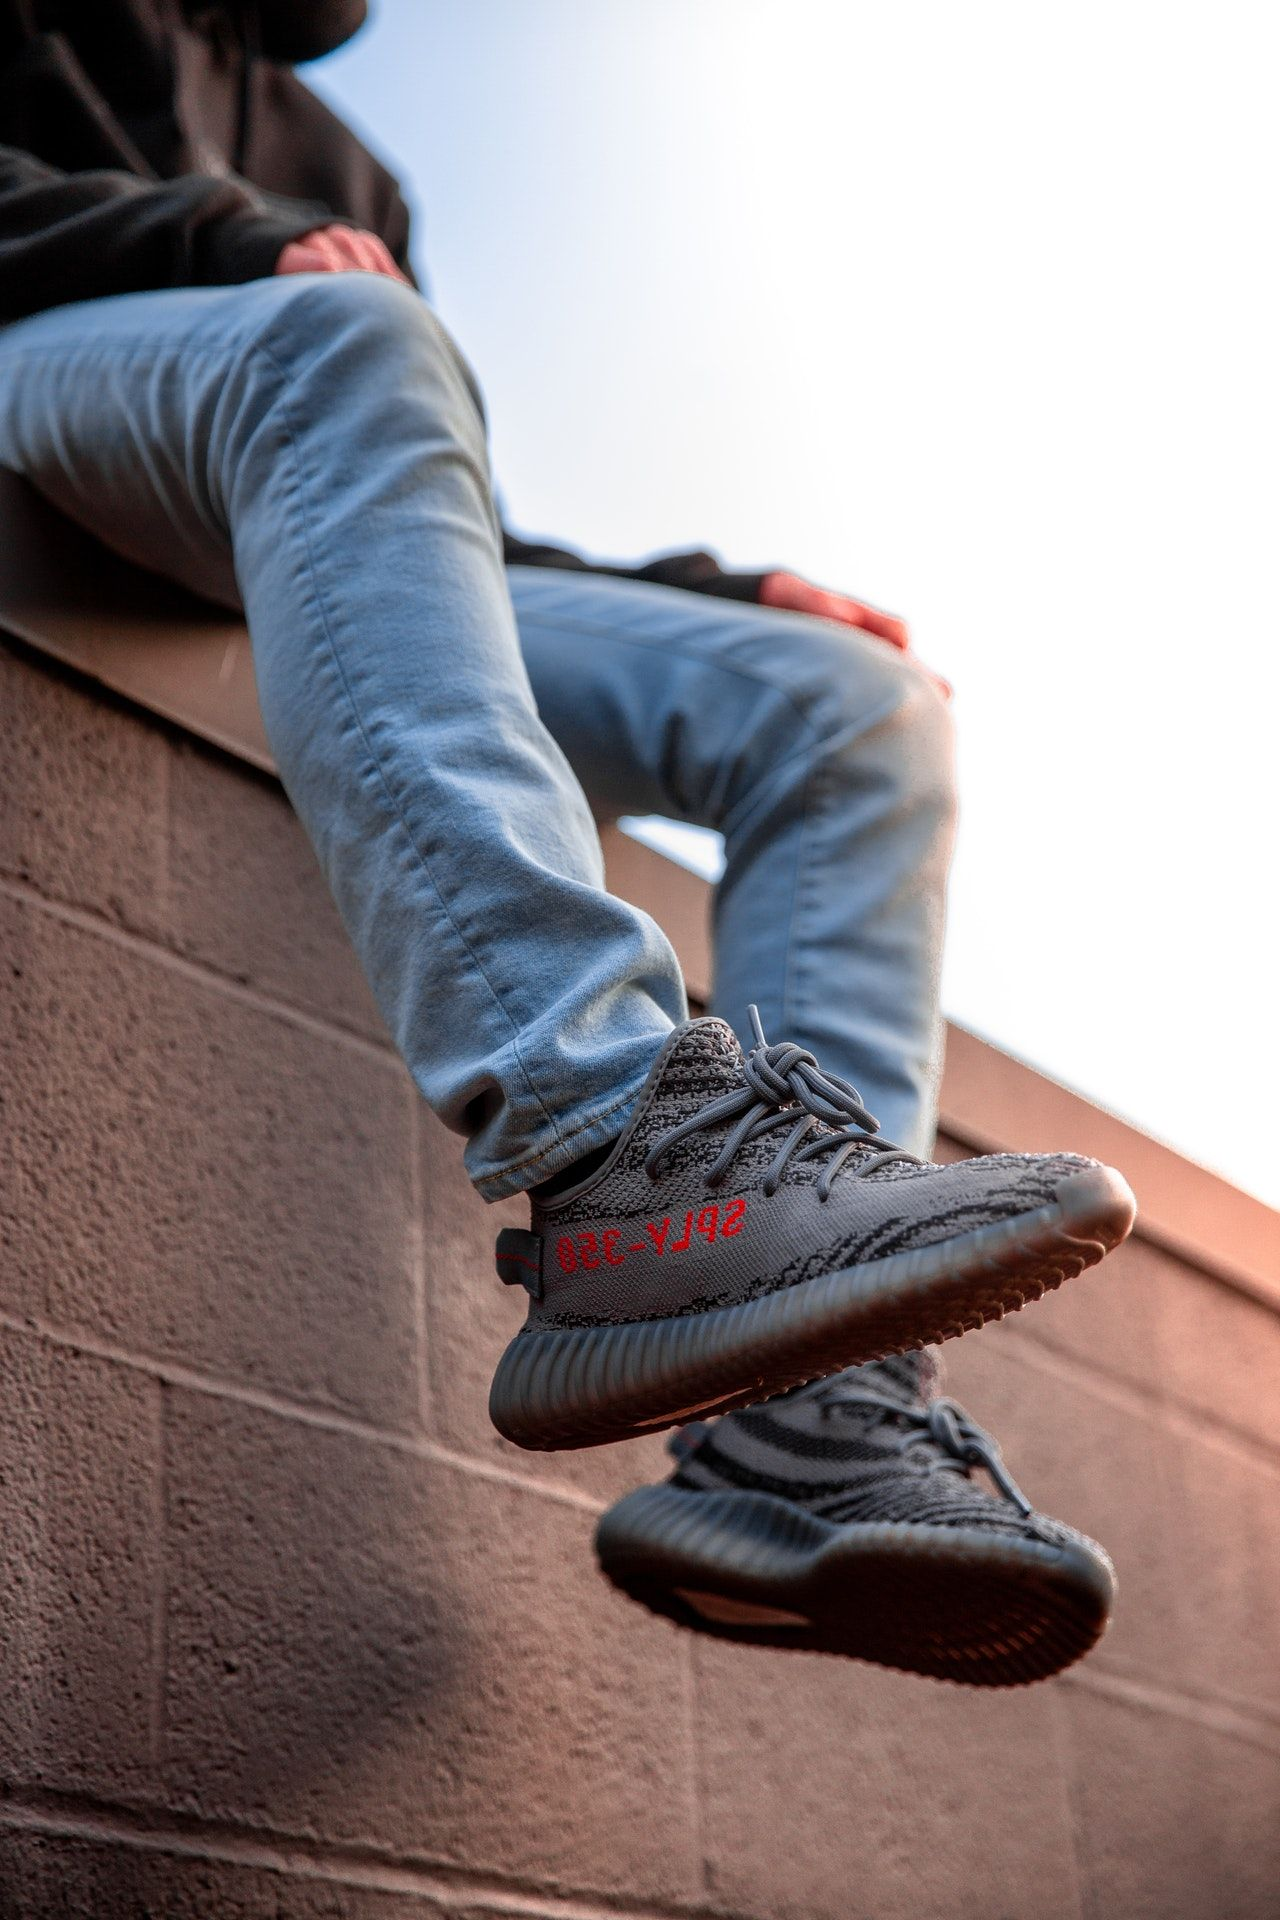 The 10 Best Fake Yeezys of 2020 | Best